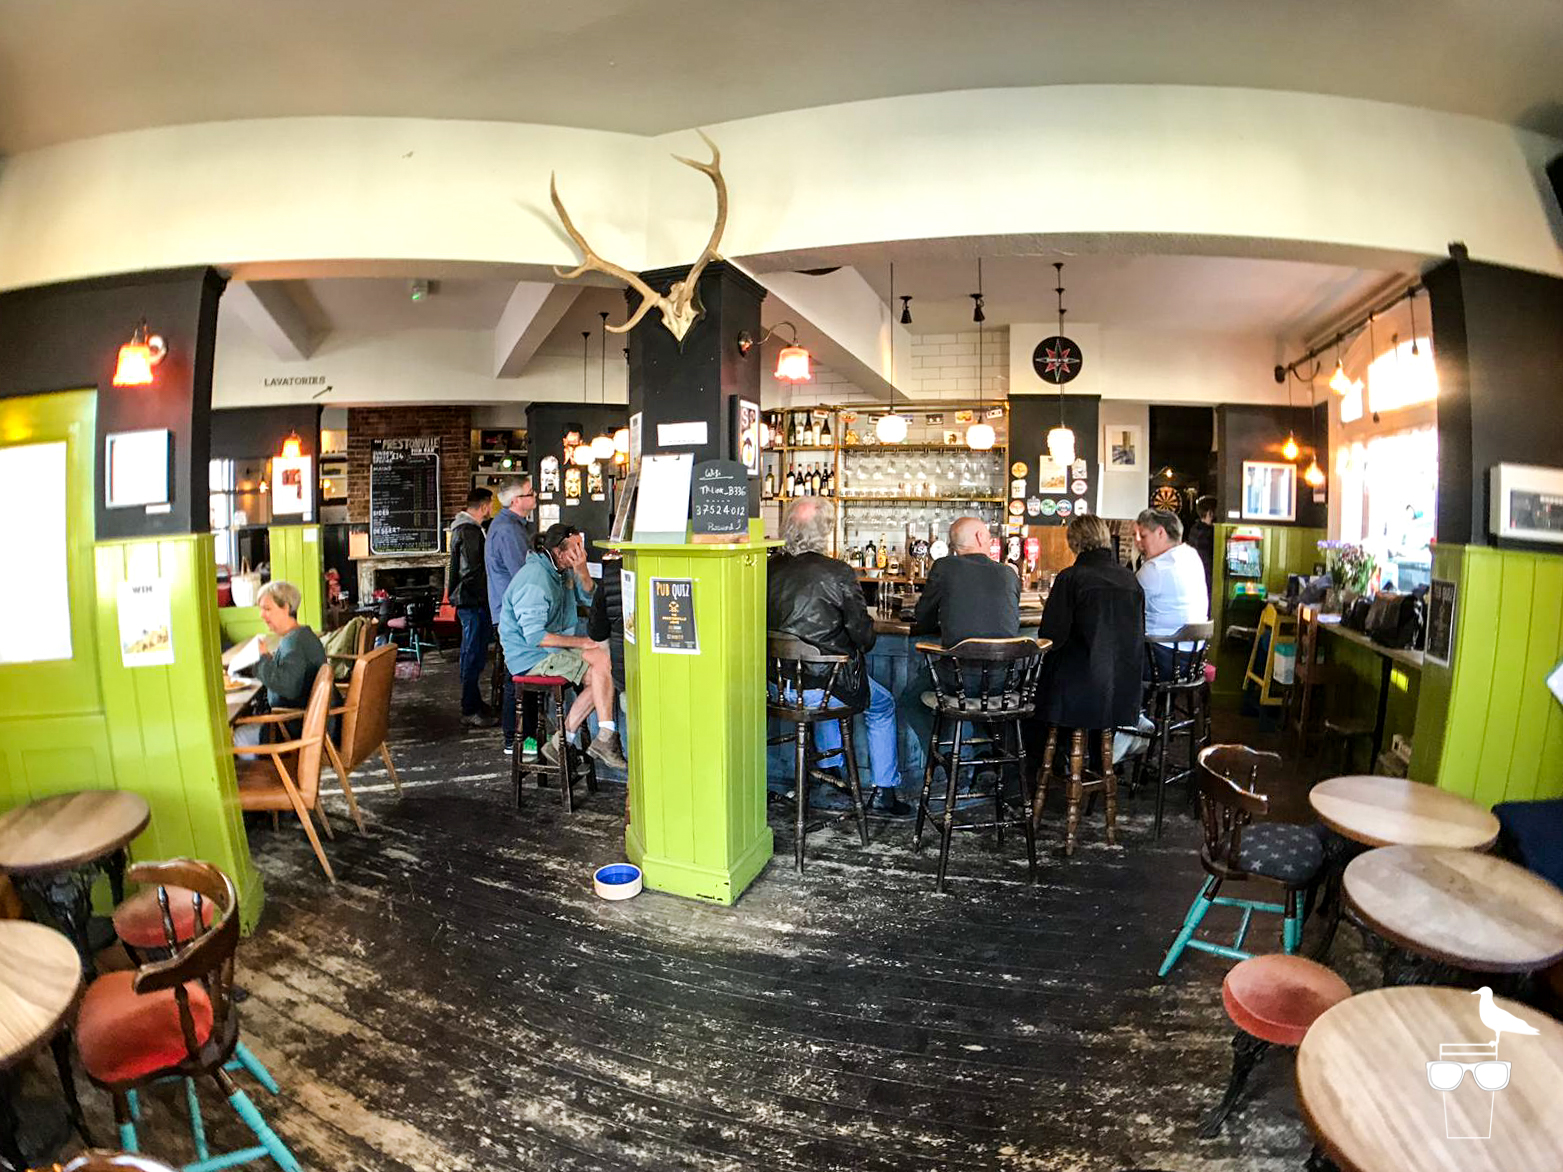 the prestonville arms pub brighton inside wide angle pub with customers